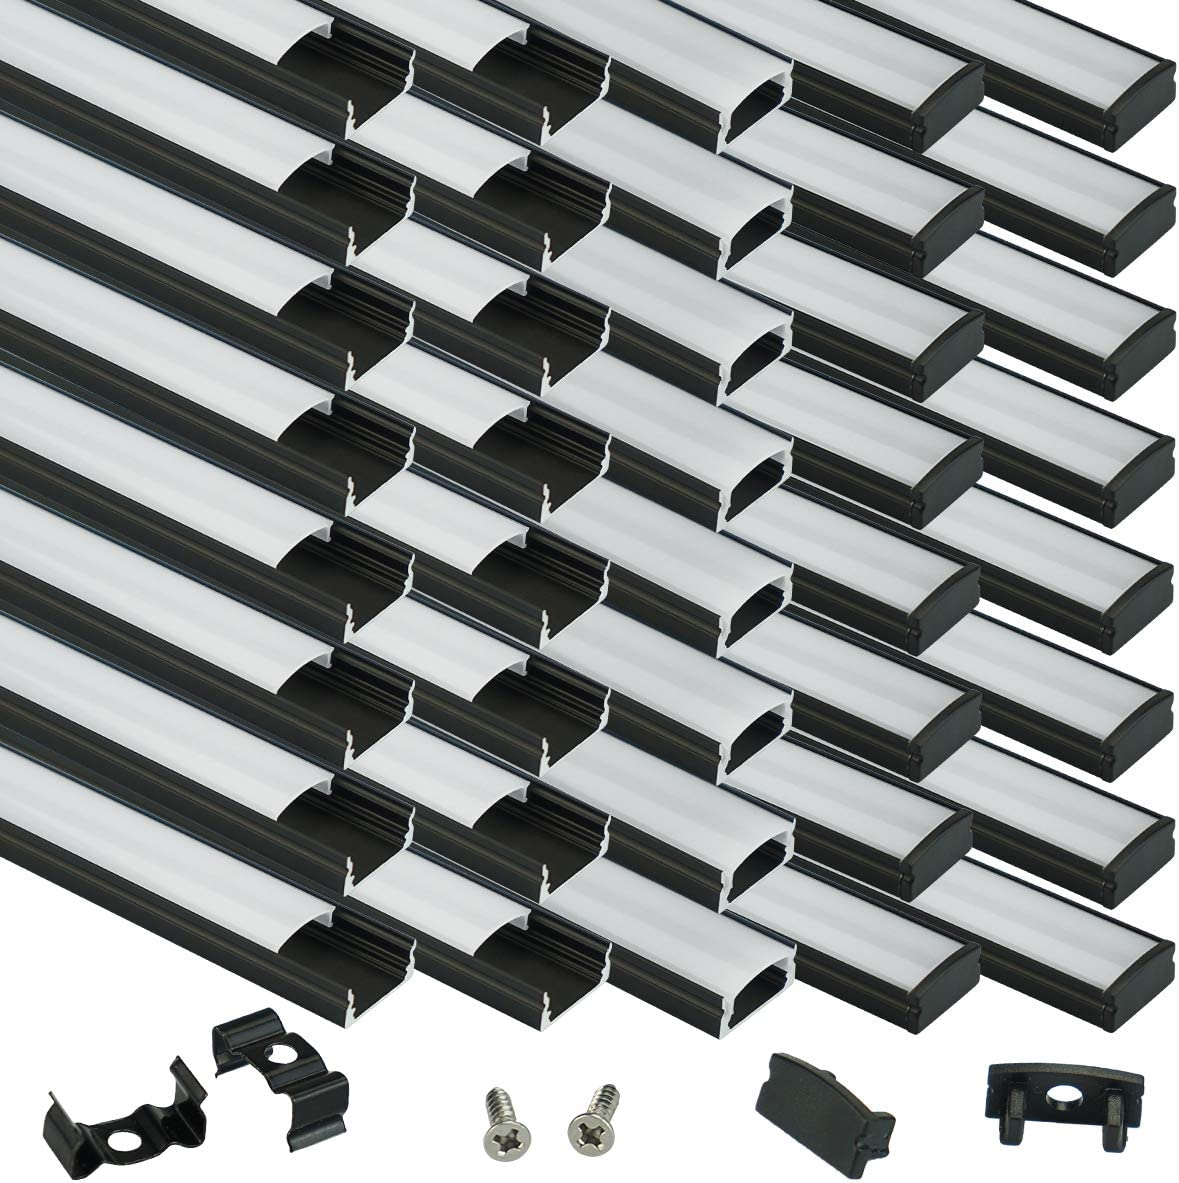 Muzata 40Pack 3.3ft 1M Black LED Milky System Channel White with Shipping included Seasonal Wrap Introduction